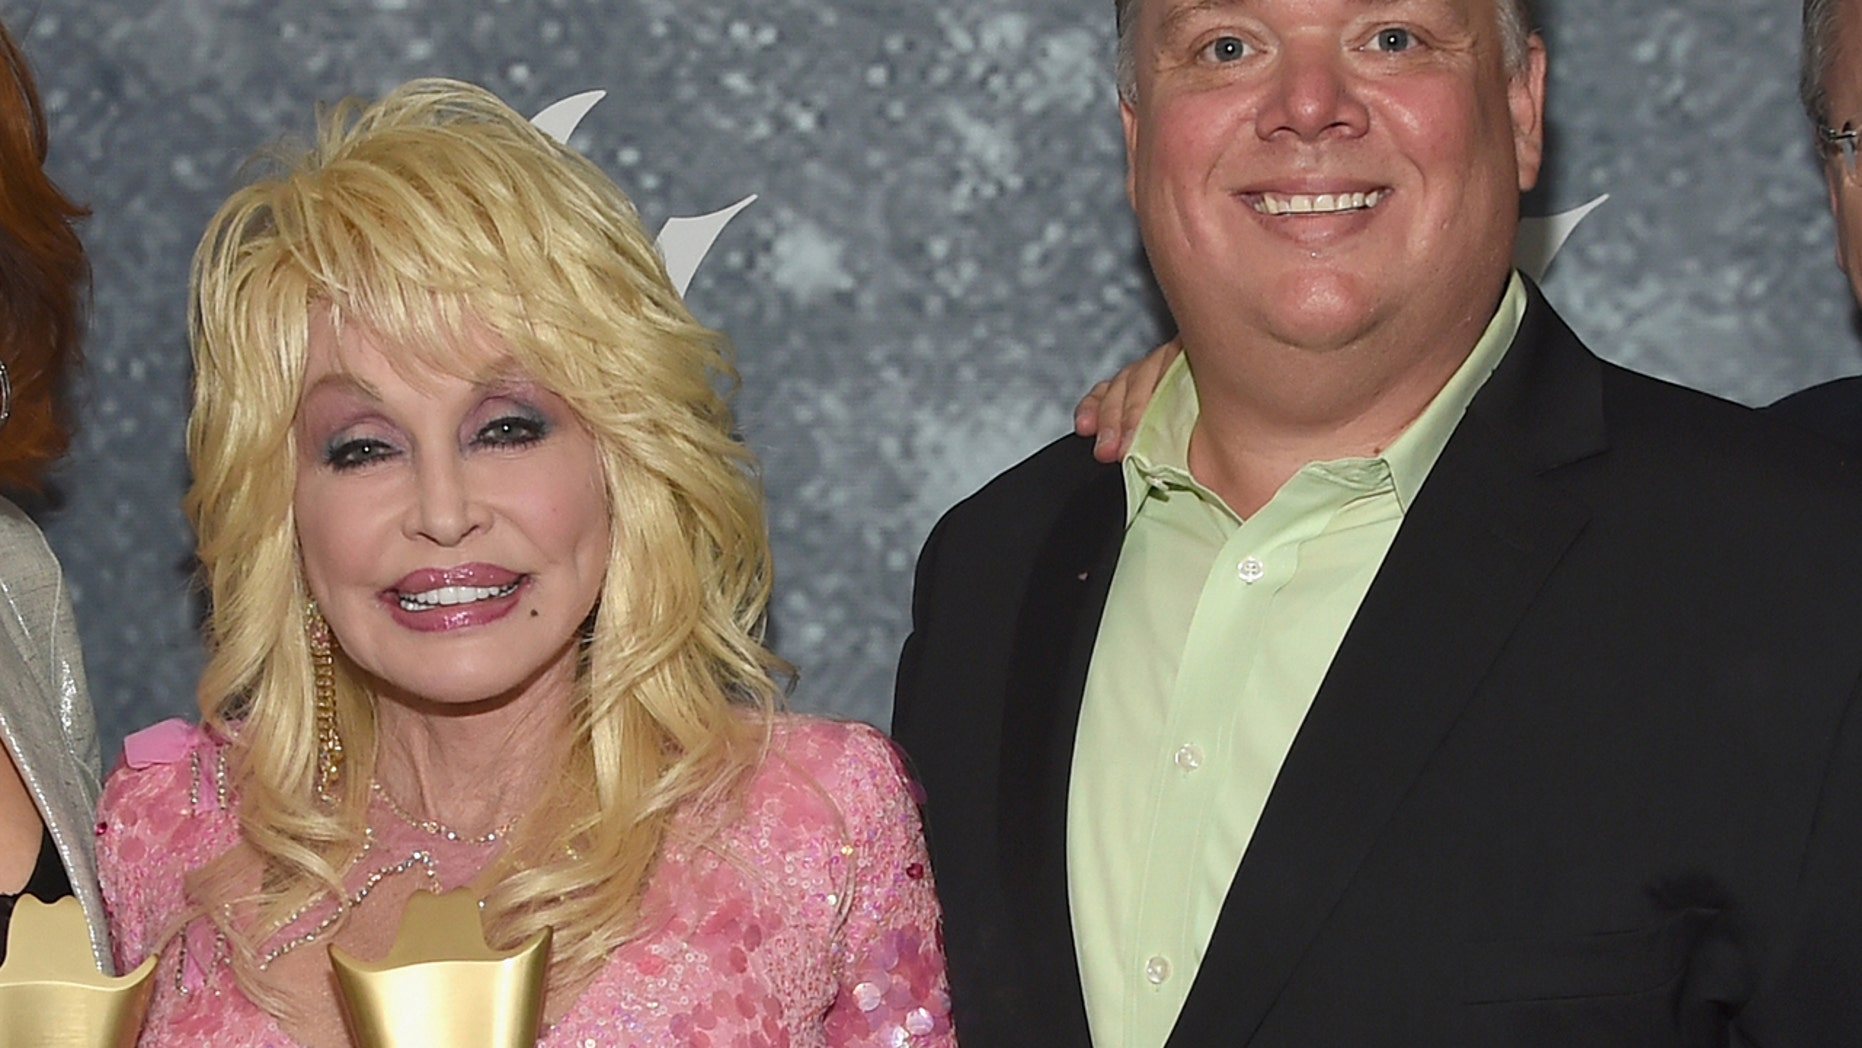 Dolly Parton (l) has parted ways with longtime publicist Kirt Webster (r) after the former PR powerhouse was accused of sexual assault and harassment by former clients and employees.